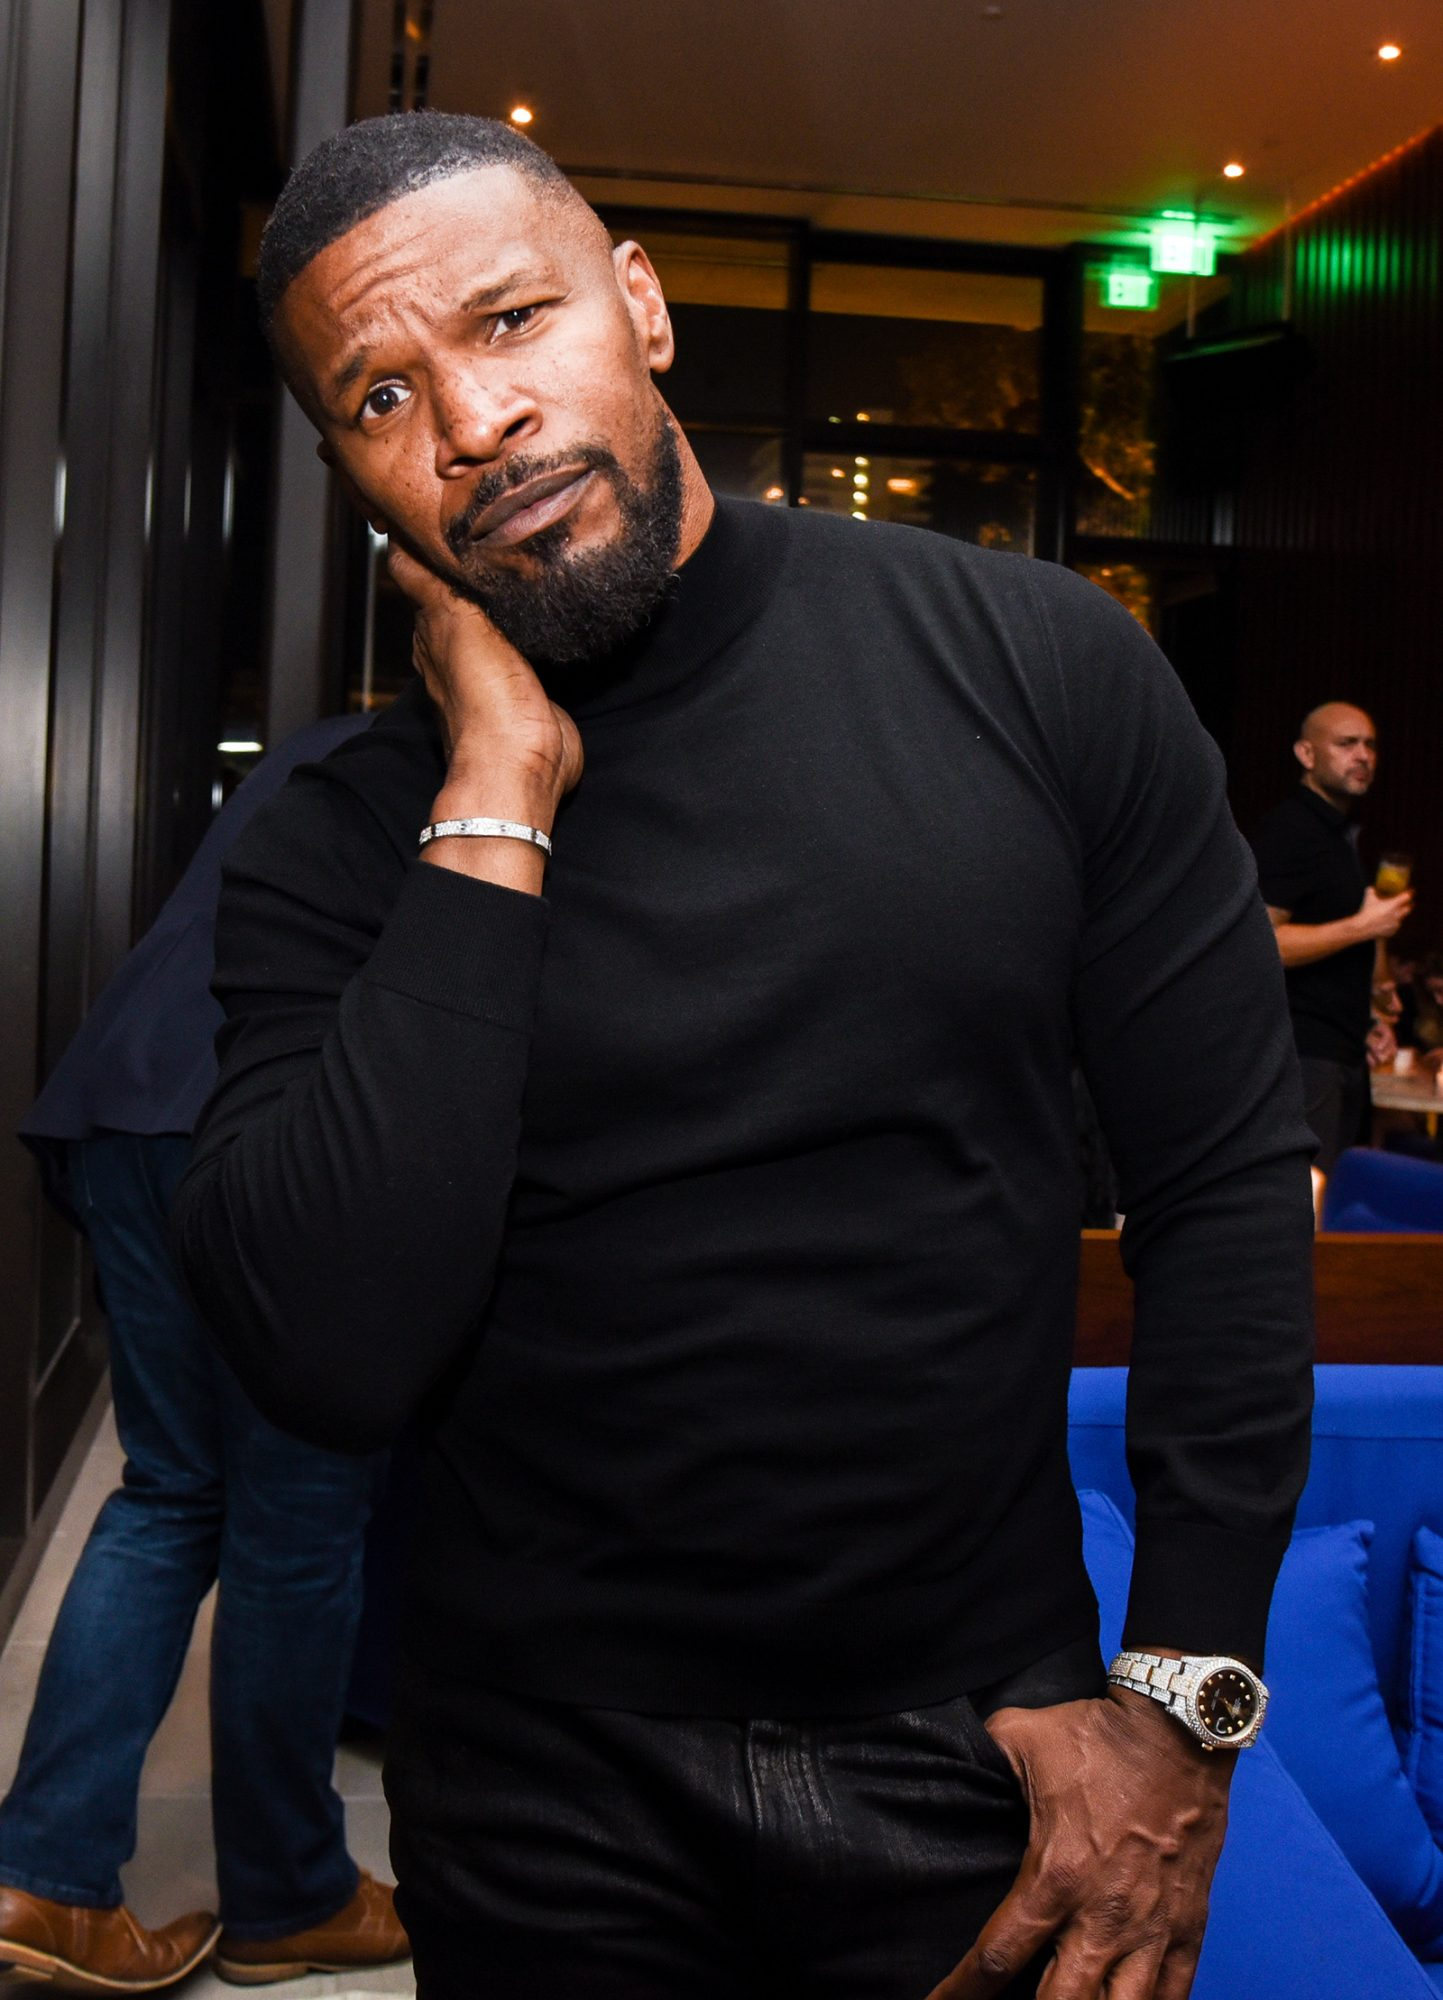 Jamie Foxx attends The West Hollywood EDITION Opening Week: featuring James Murphy and Susanne Bartsch at the Sunset at The West Hollywood EDI, West Hollywood, CA on November 16, 2019